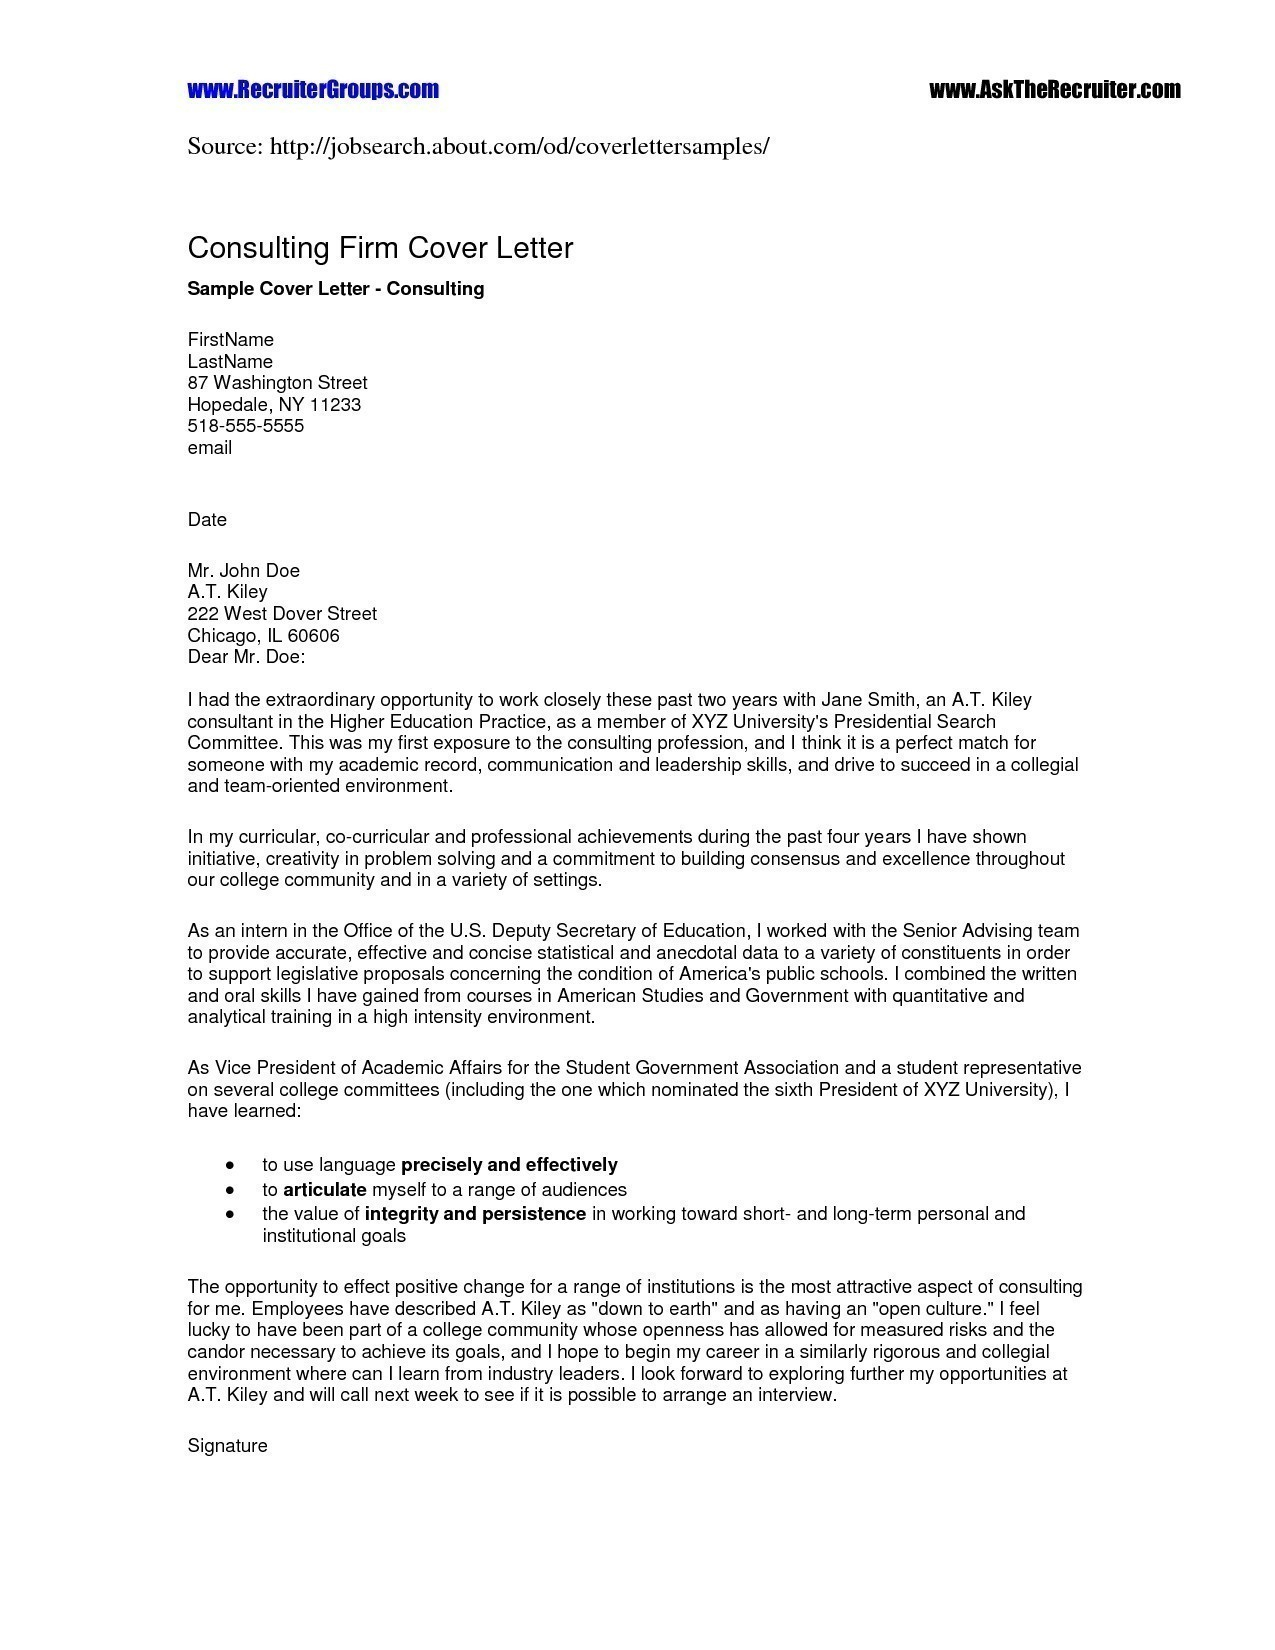 Formal Job Offer Letter Template - How to Write Job Fer Letter Fresh Job Fer Letter Sample Best Job